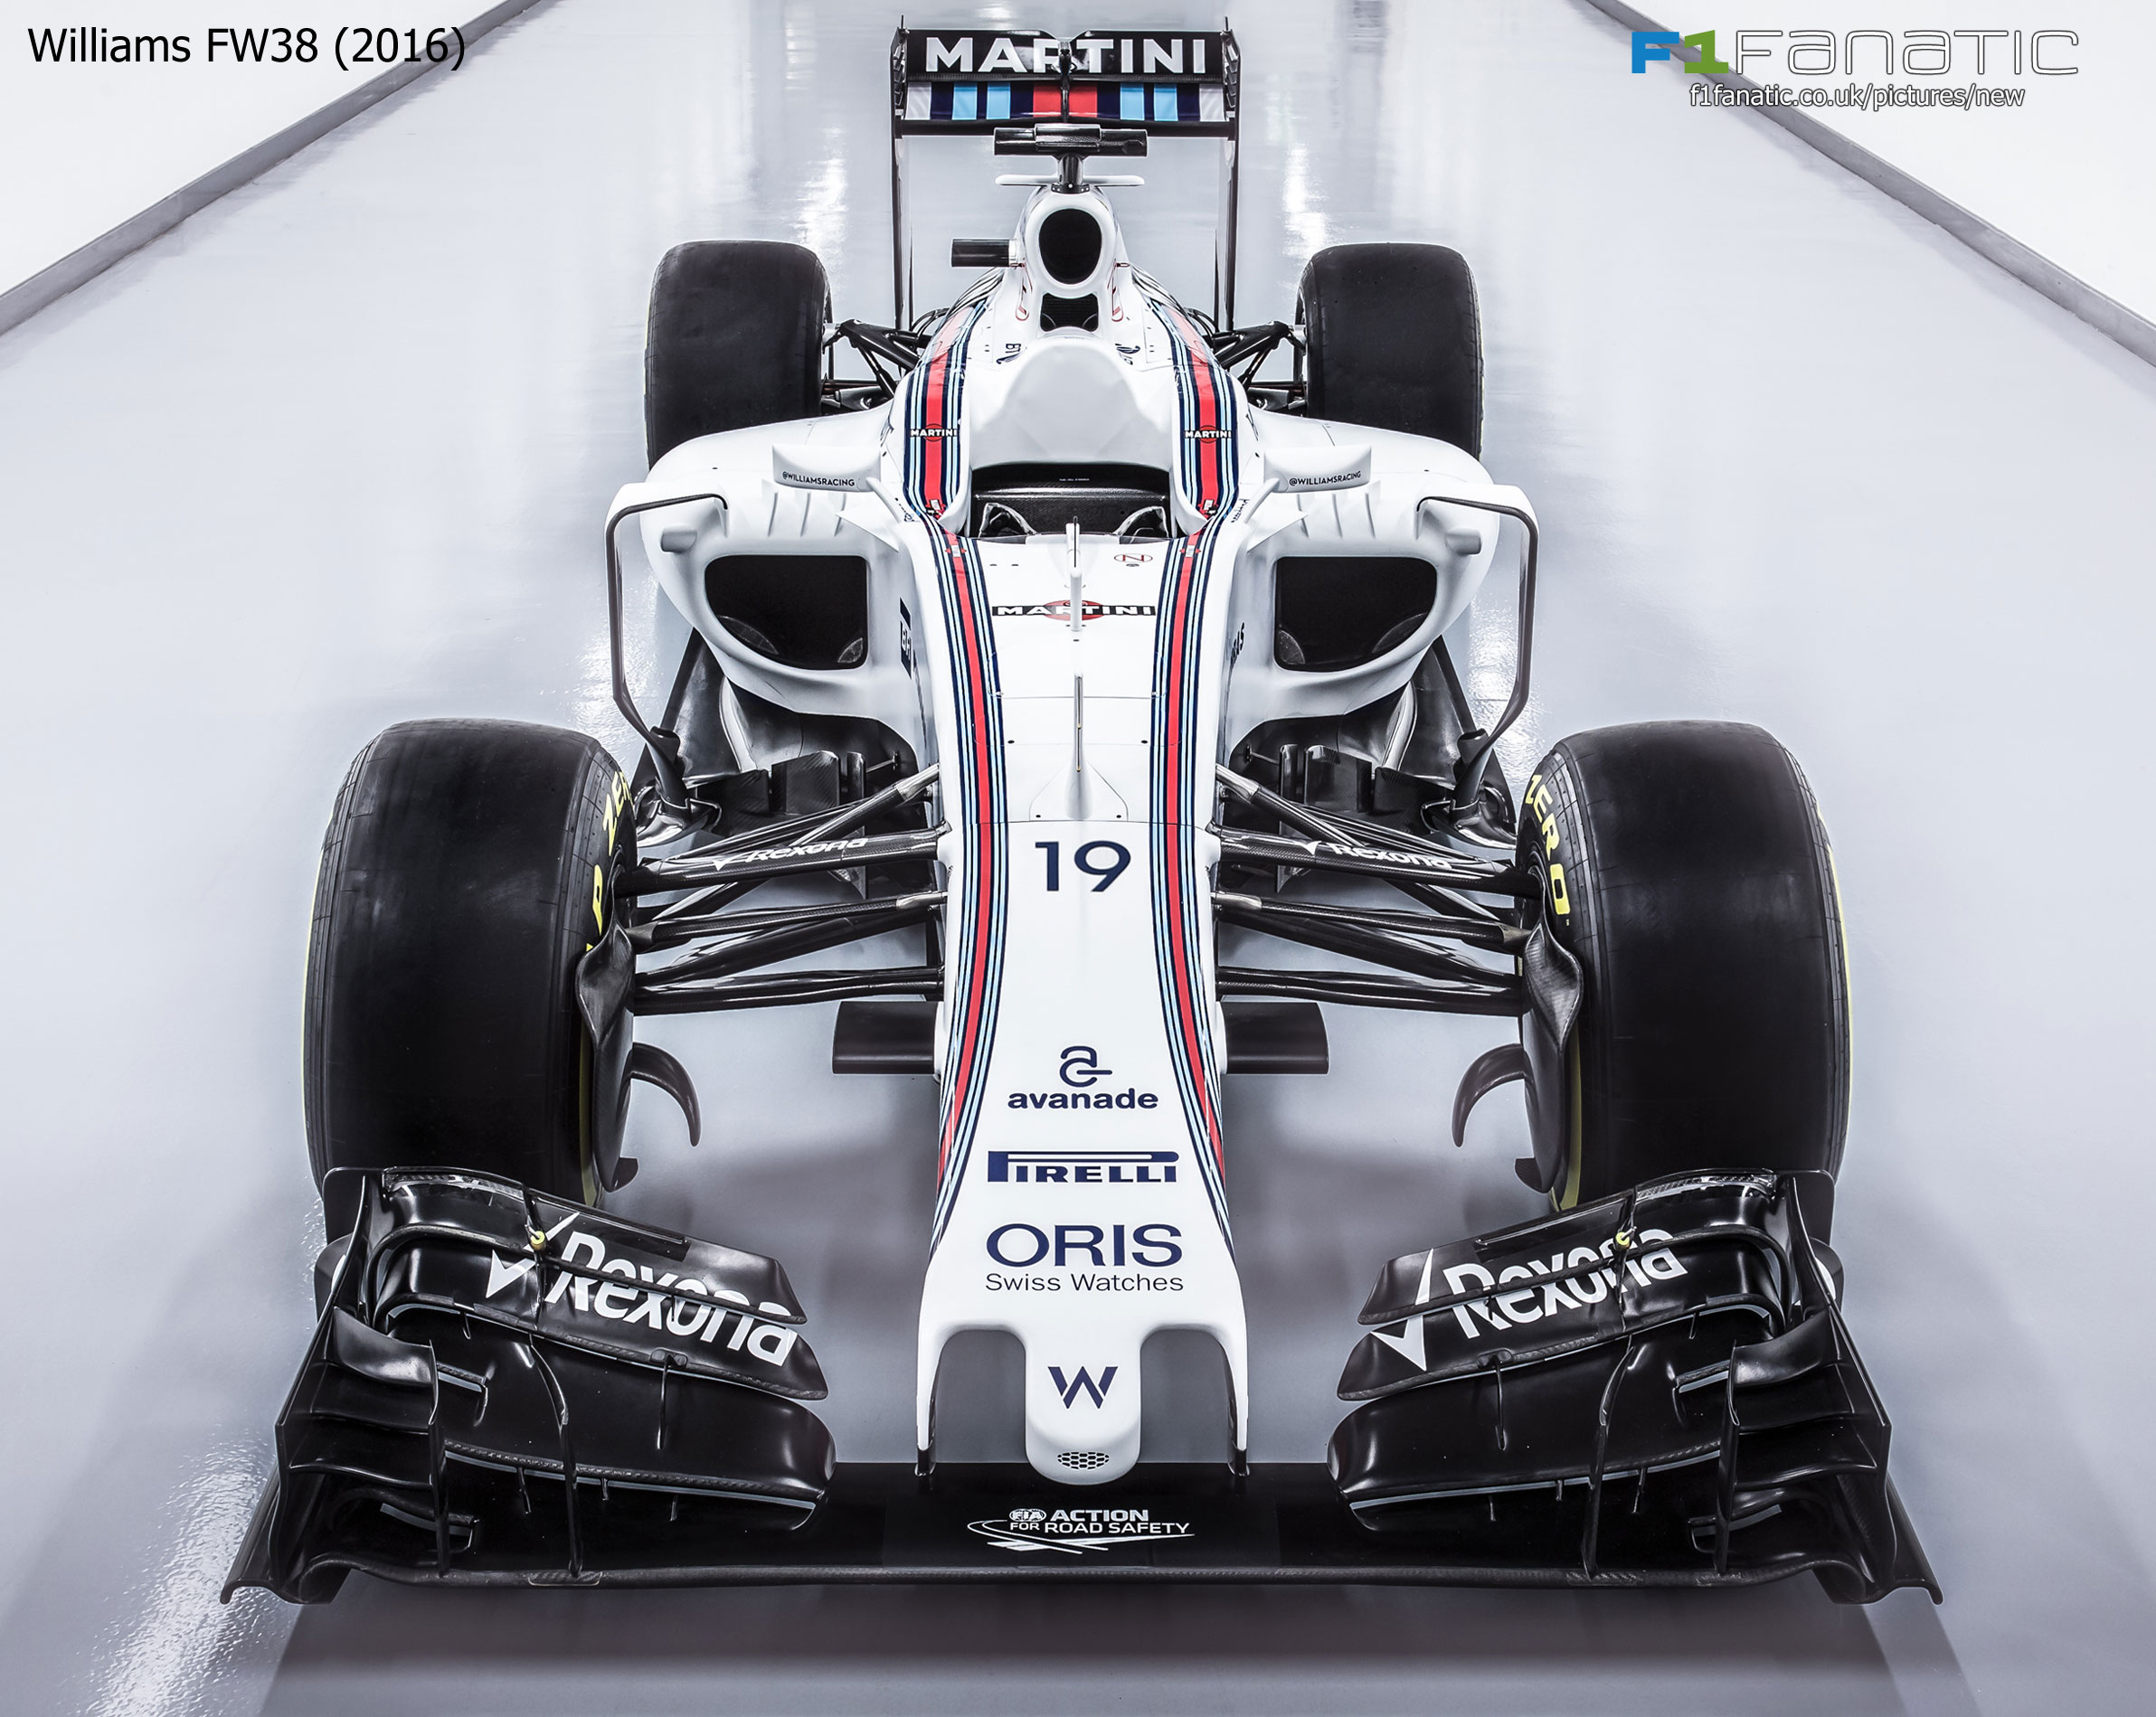 2017 Williams Fw40 And 2016 Fw38 Front View